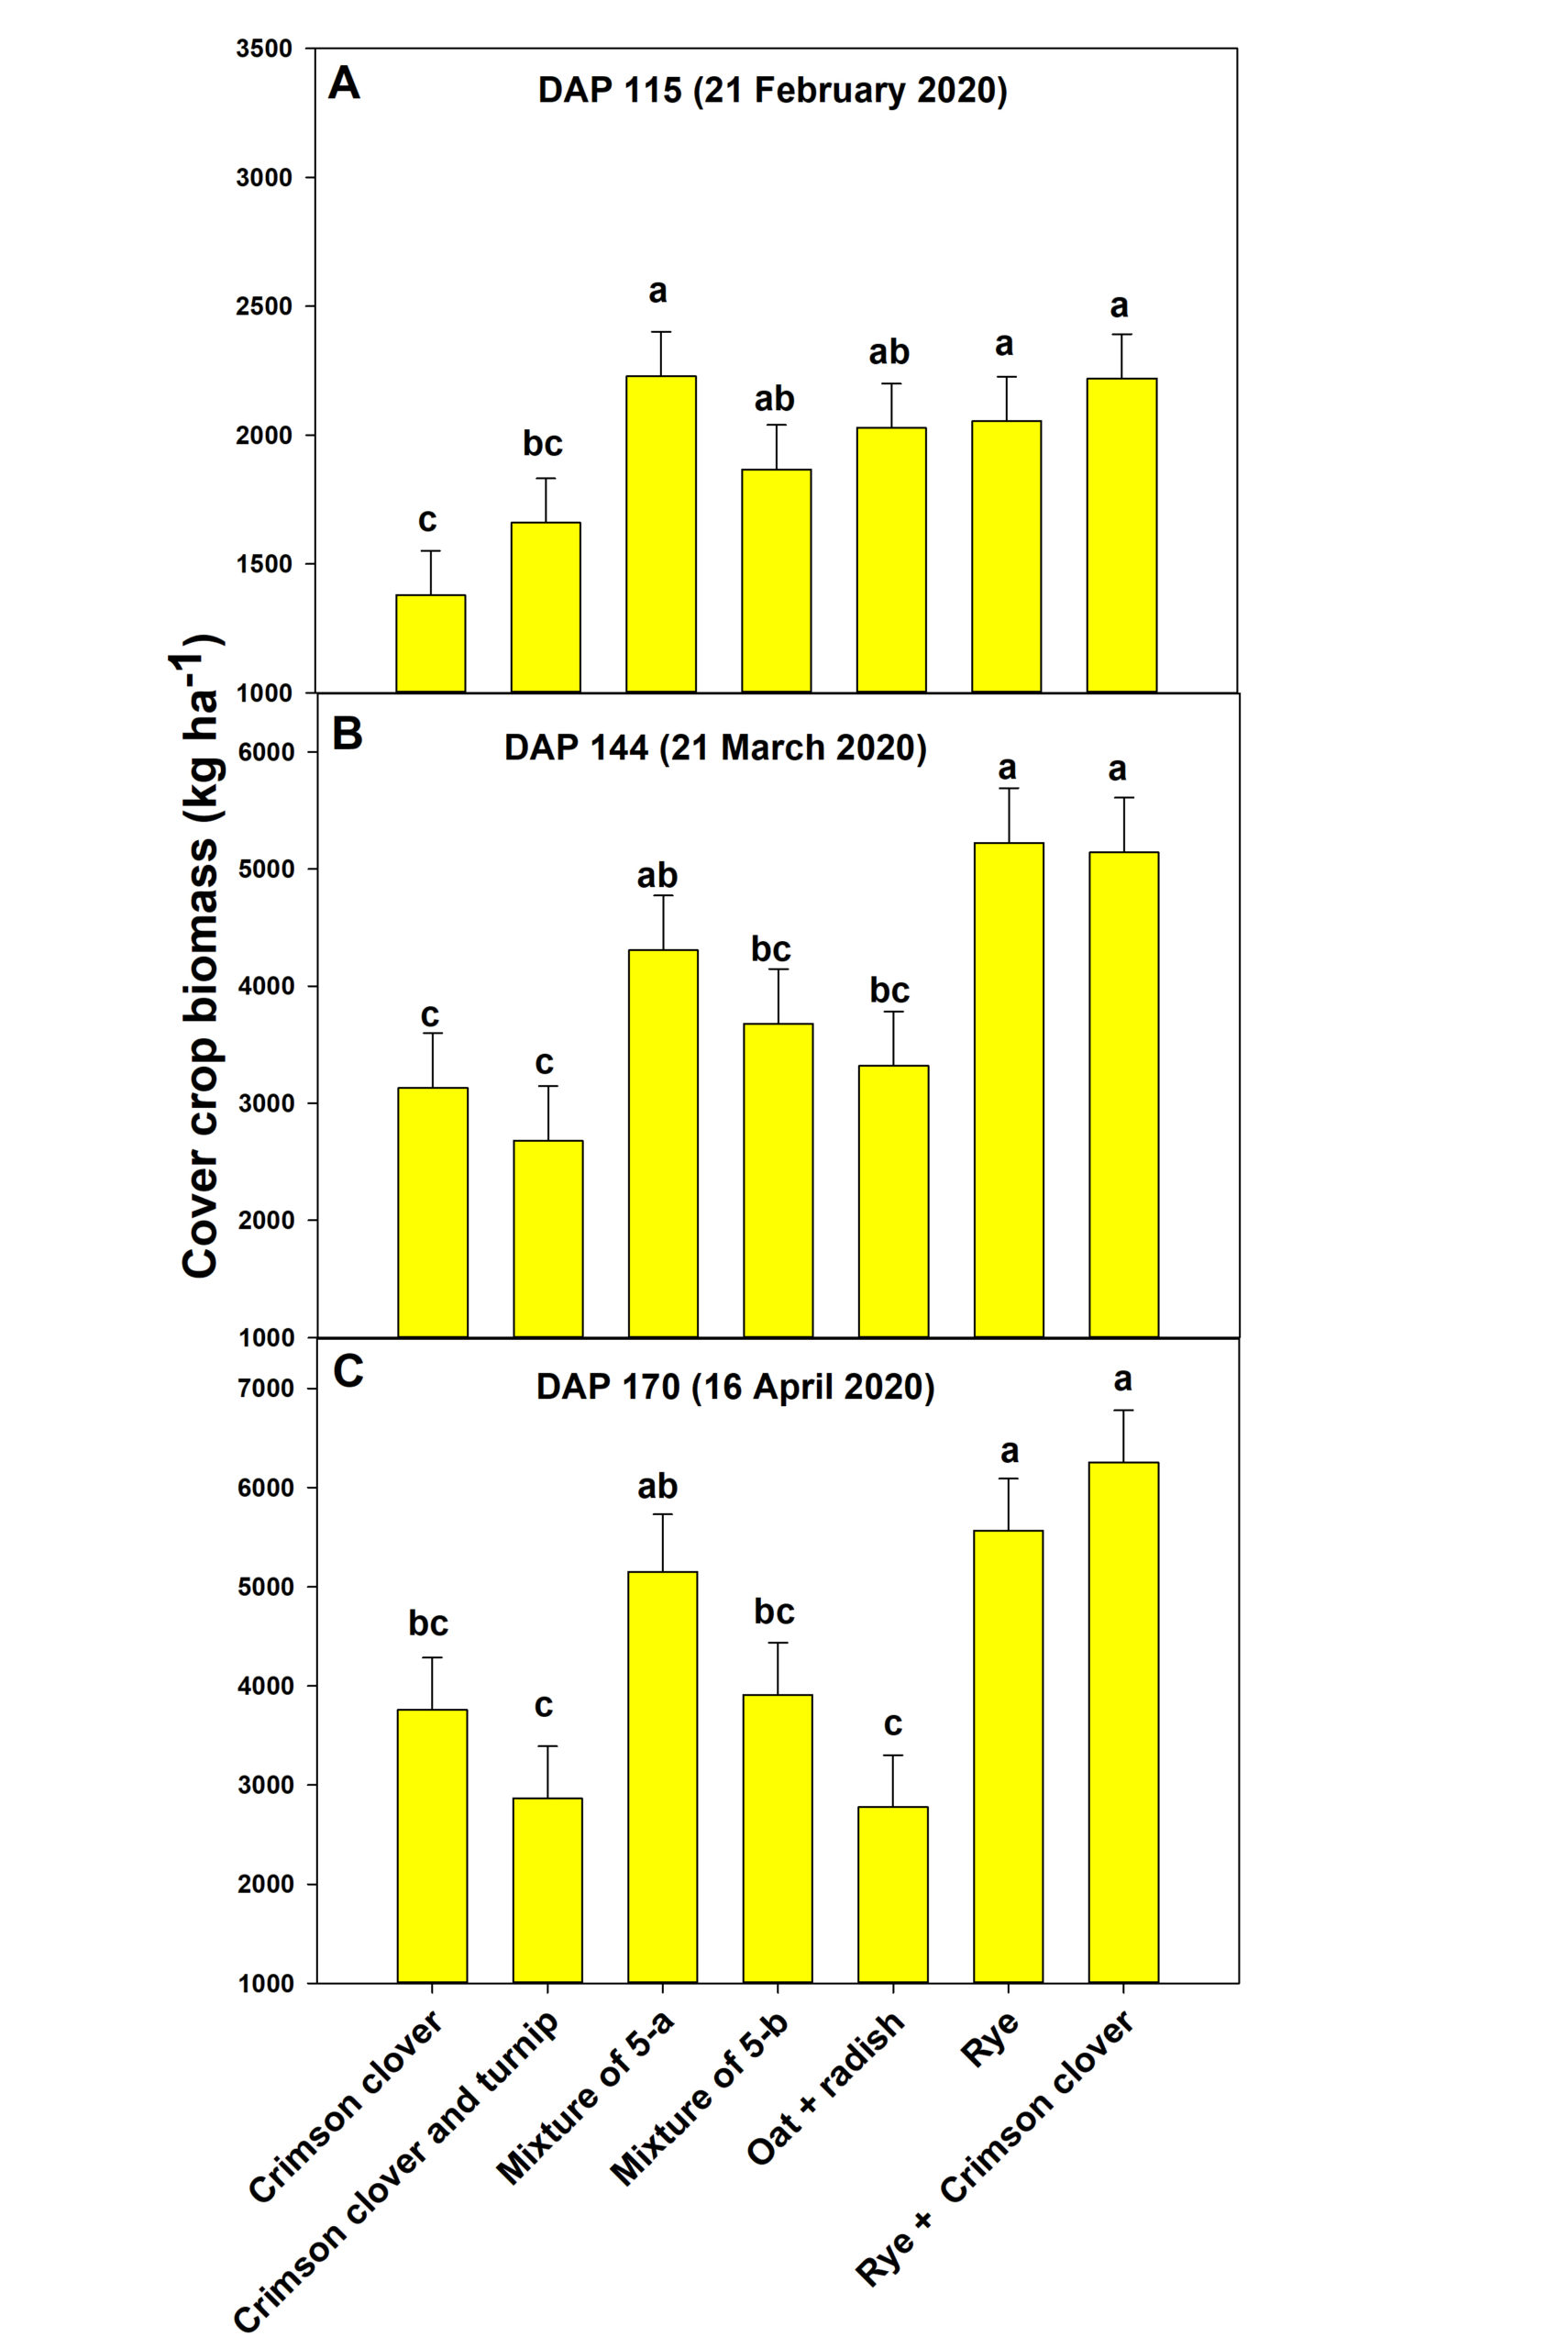 Figure 3. Biomass production of cover crops. DAP- Days after planting.